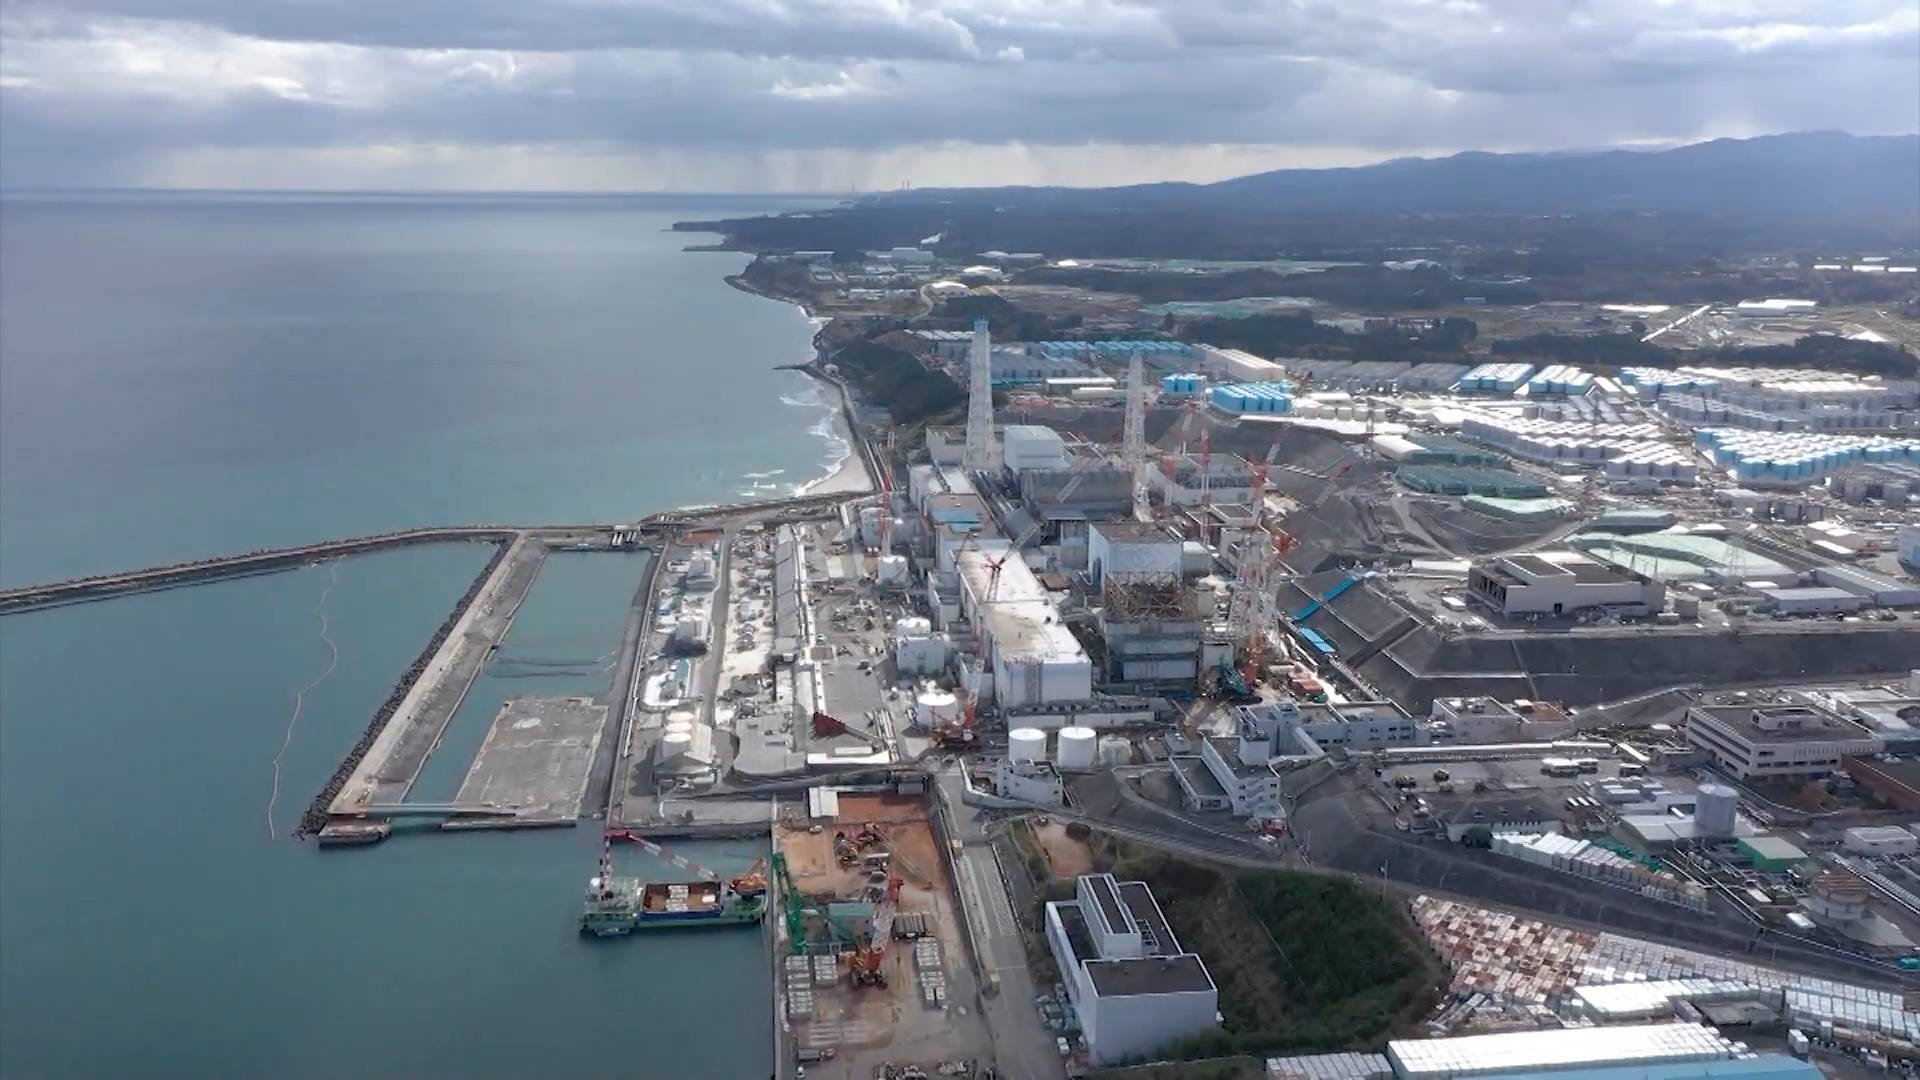 GLOBALink | Japan to release Fukushima radioactive water into sea